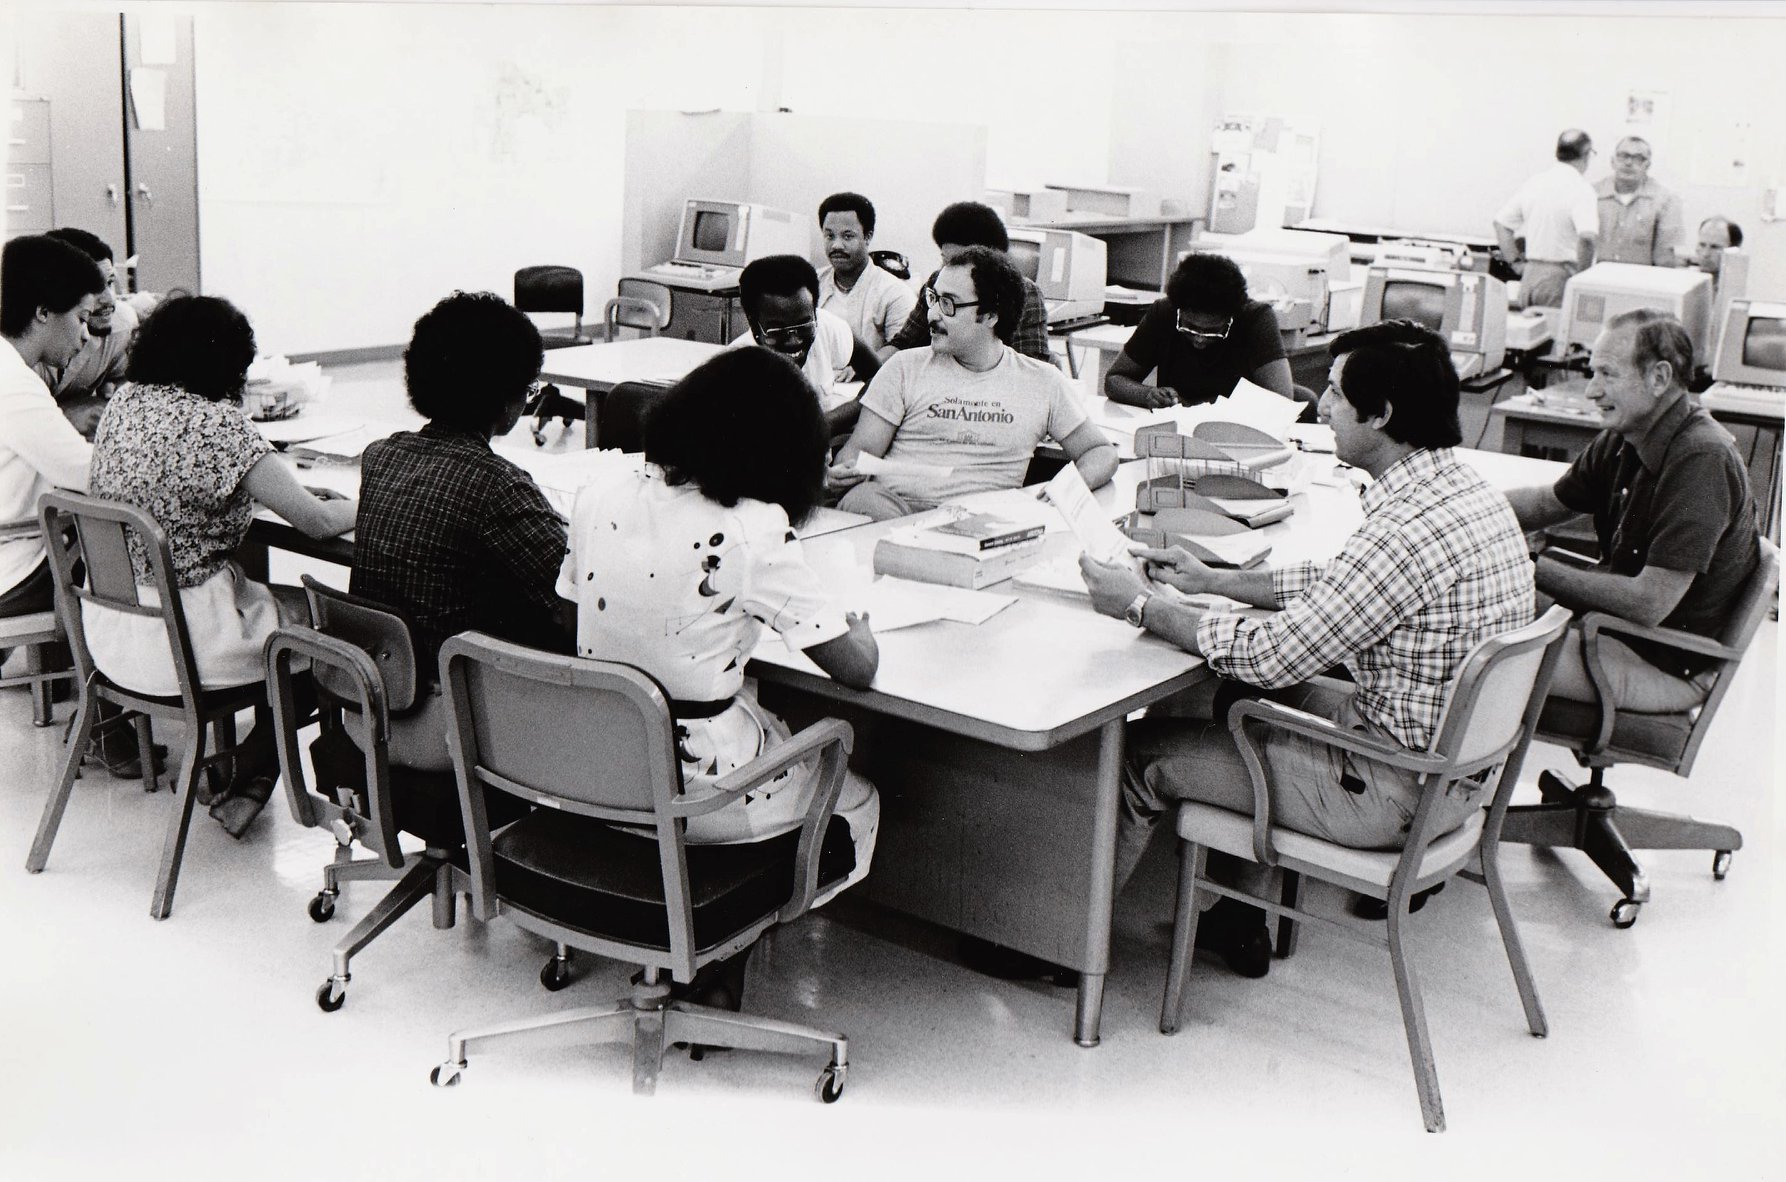 Donald Carson, at extreme right, with the Editing Program for Minority Journalists in 1980 at the University of Arizona at Tucson. (Credit: Frank Sotomayor)